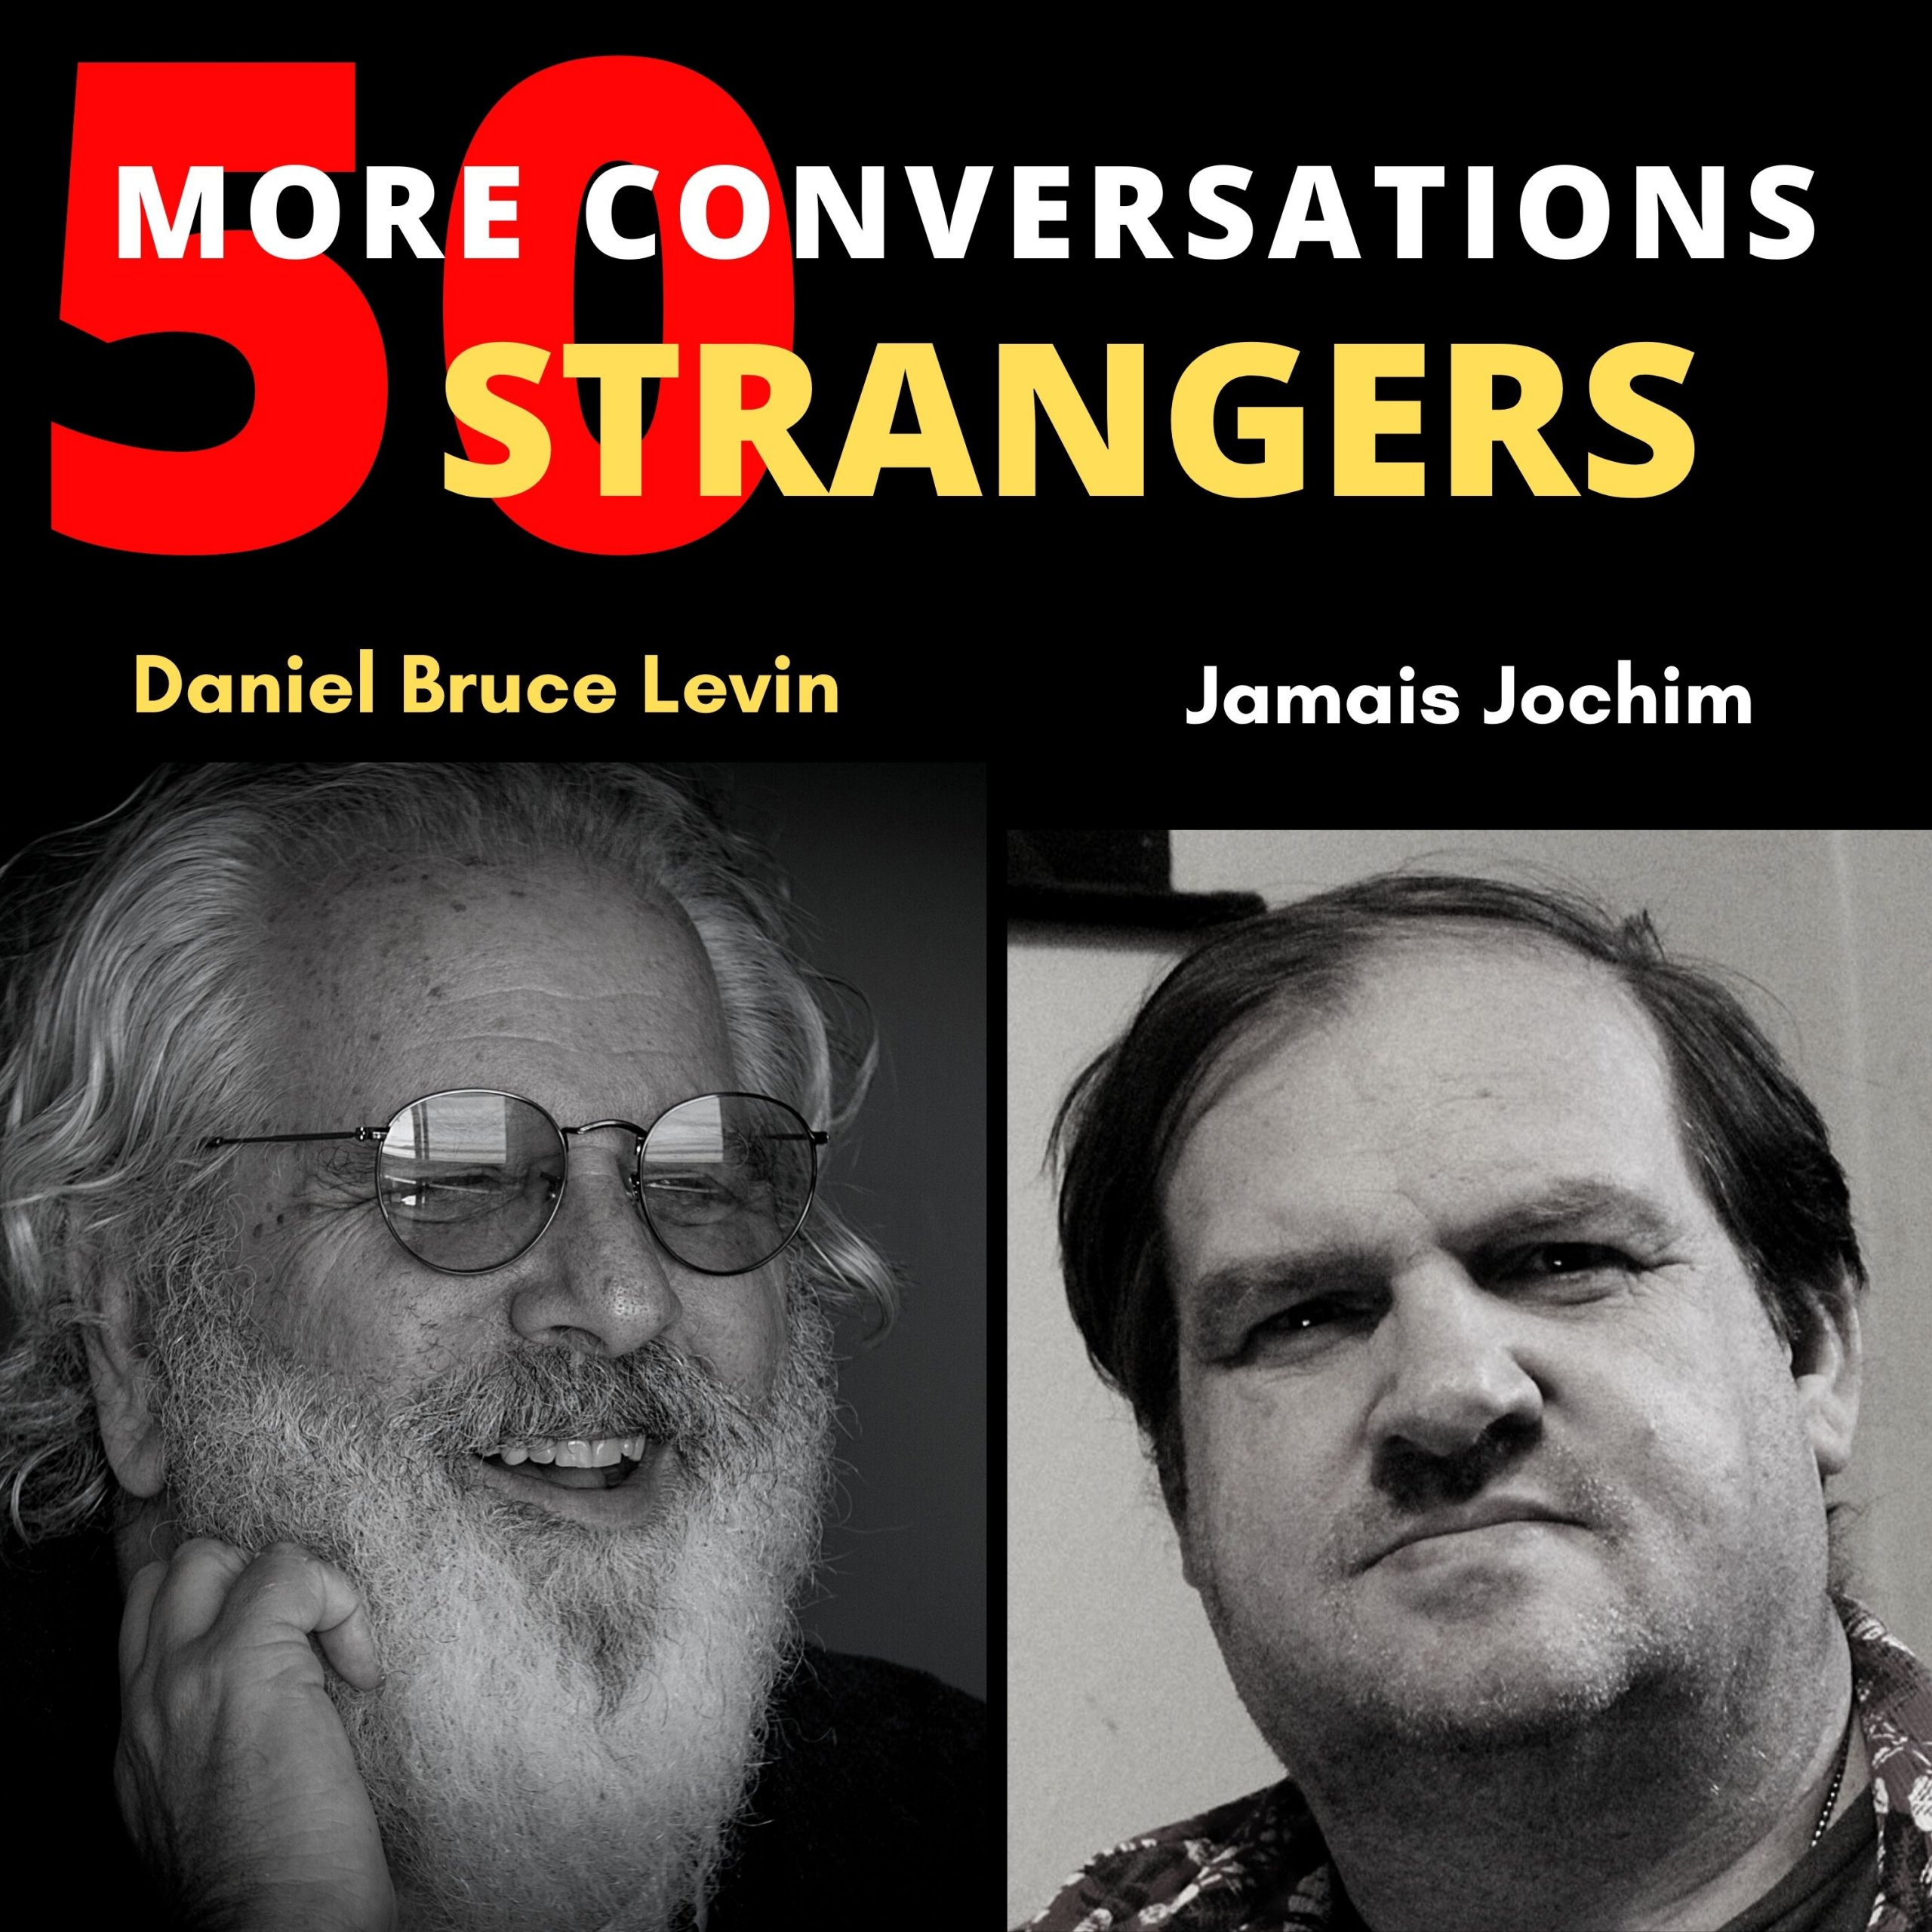 50 More Conversations with 50 More Strangers with Jamais Jochim